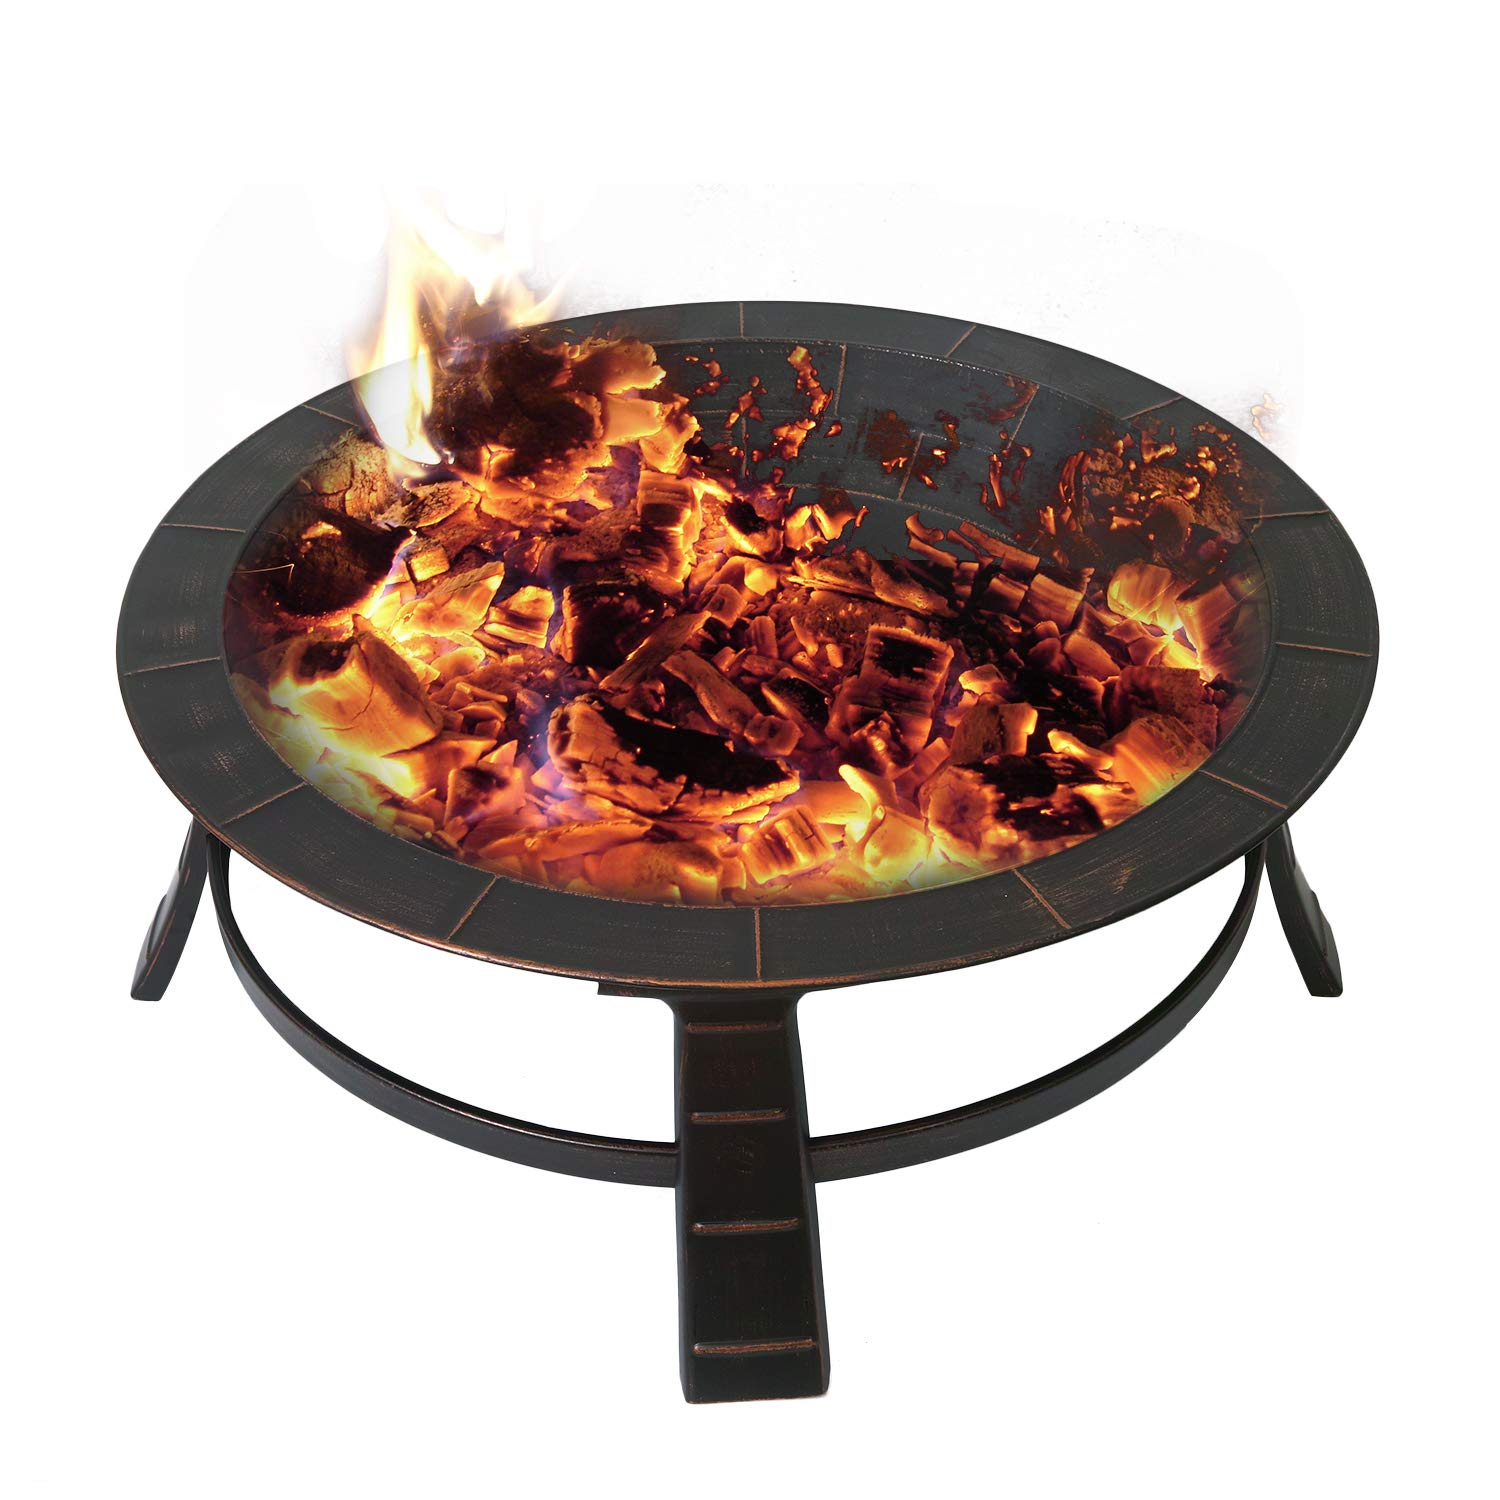 Adeco FP0015 30 Inches Fire Pit with Cover, Antique Bronze by Adeco